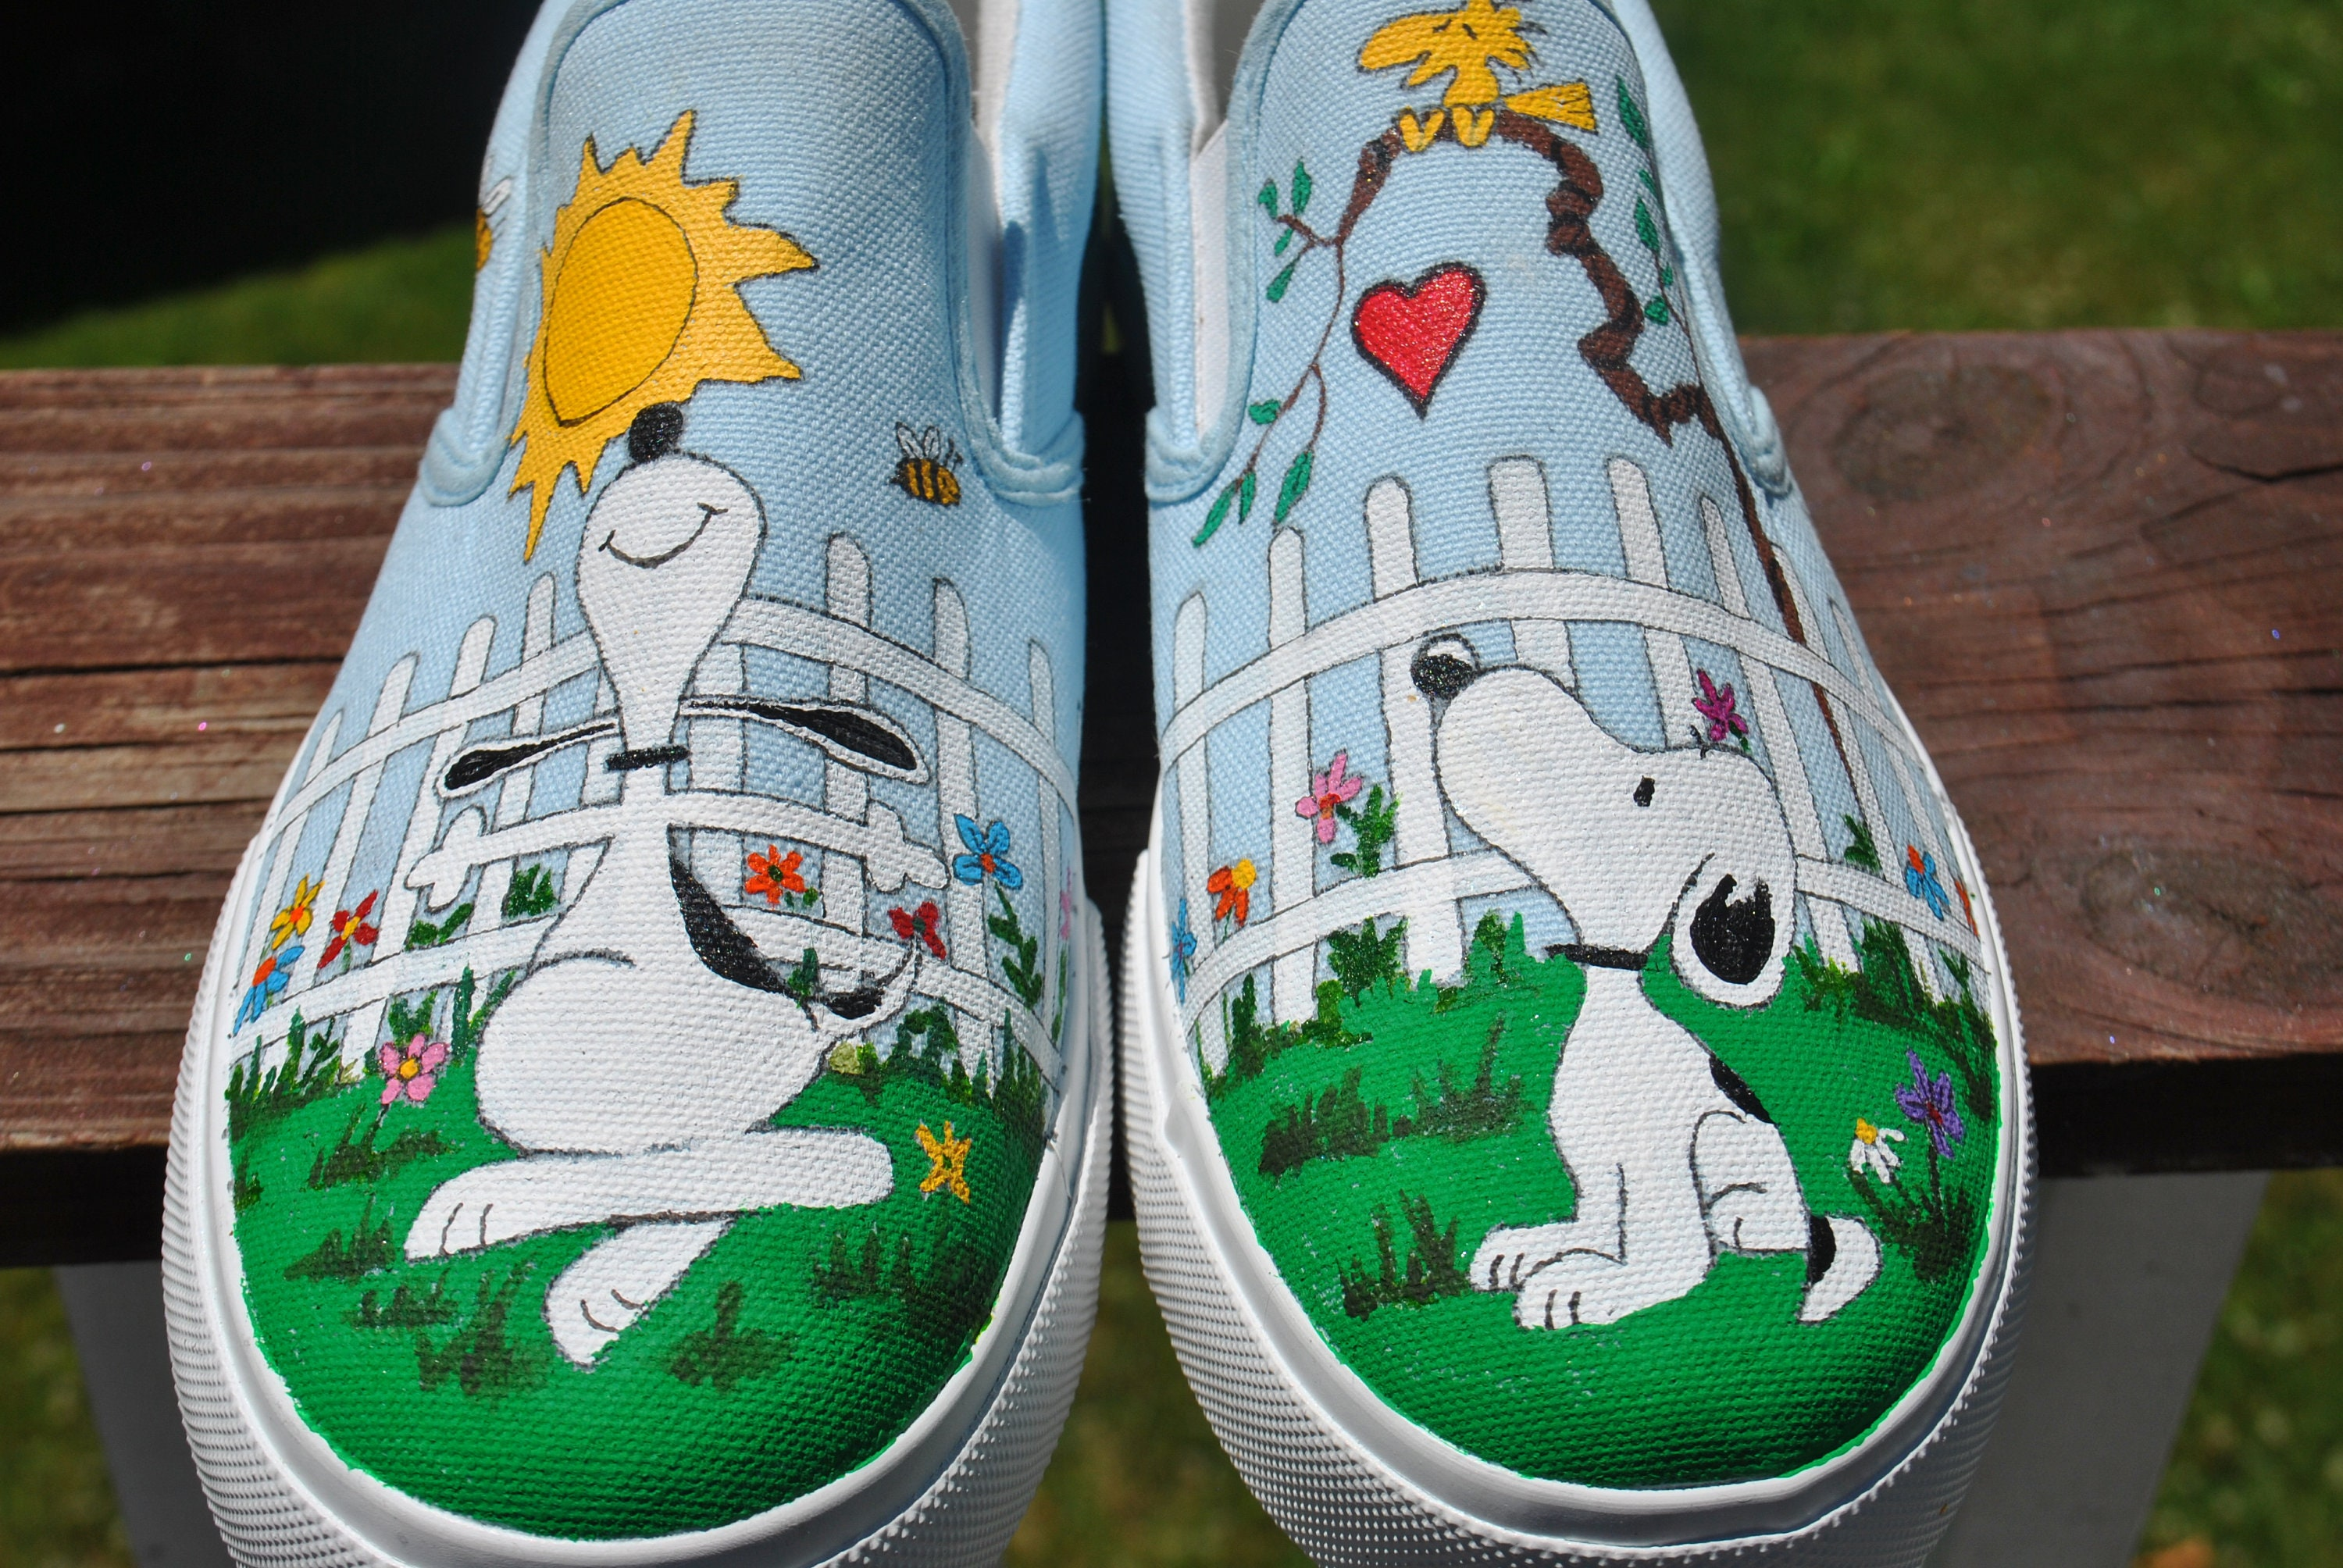 Snoopy custom hand painted vans sneakers snoopy shoes sorry sold jpg  3000x2008 Hand painted snoopy shoes 0e53a2fde